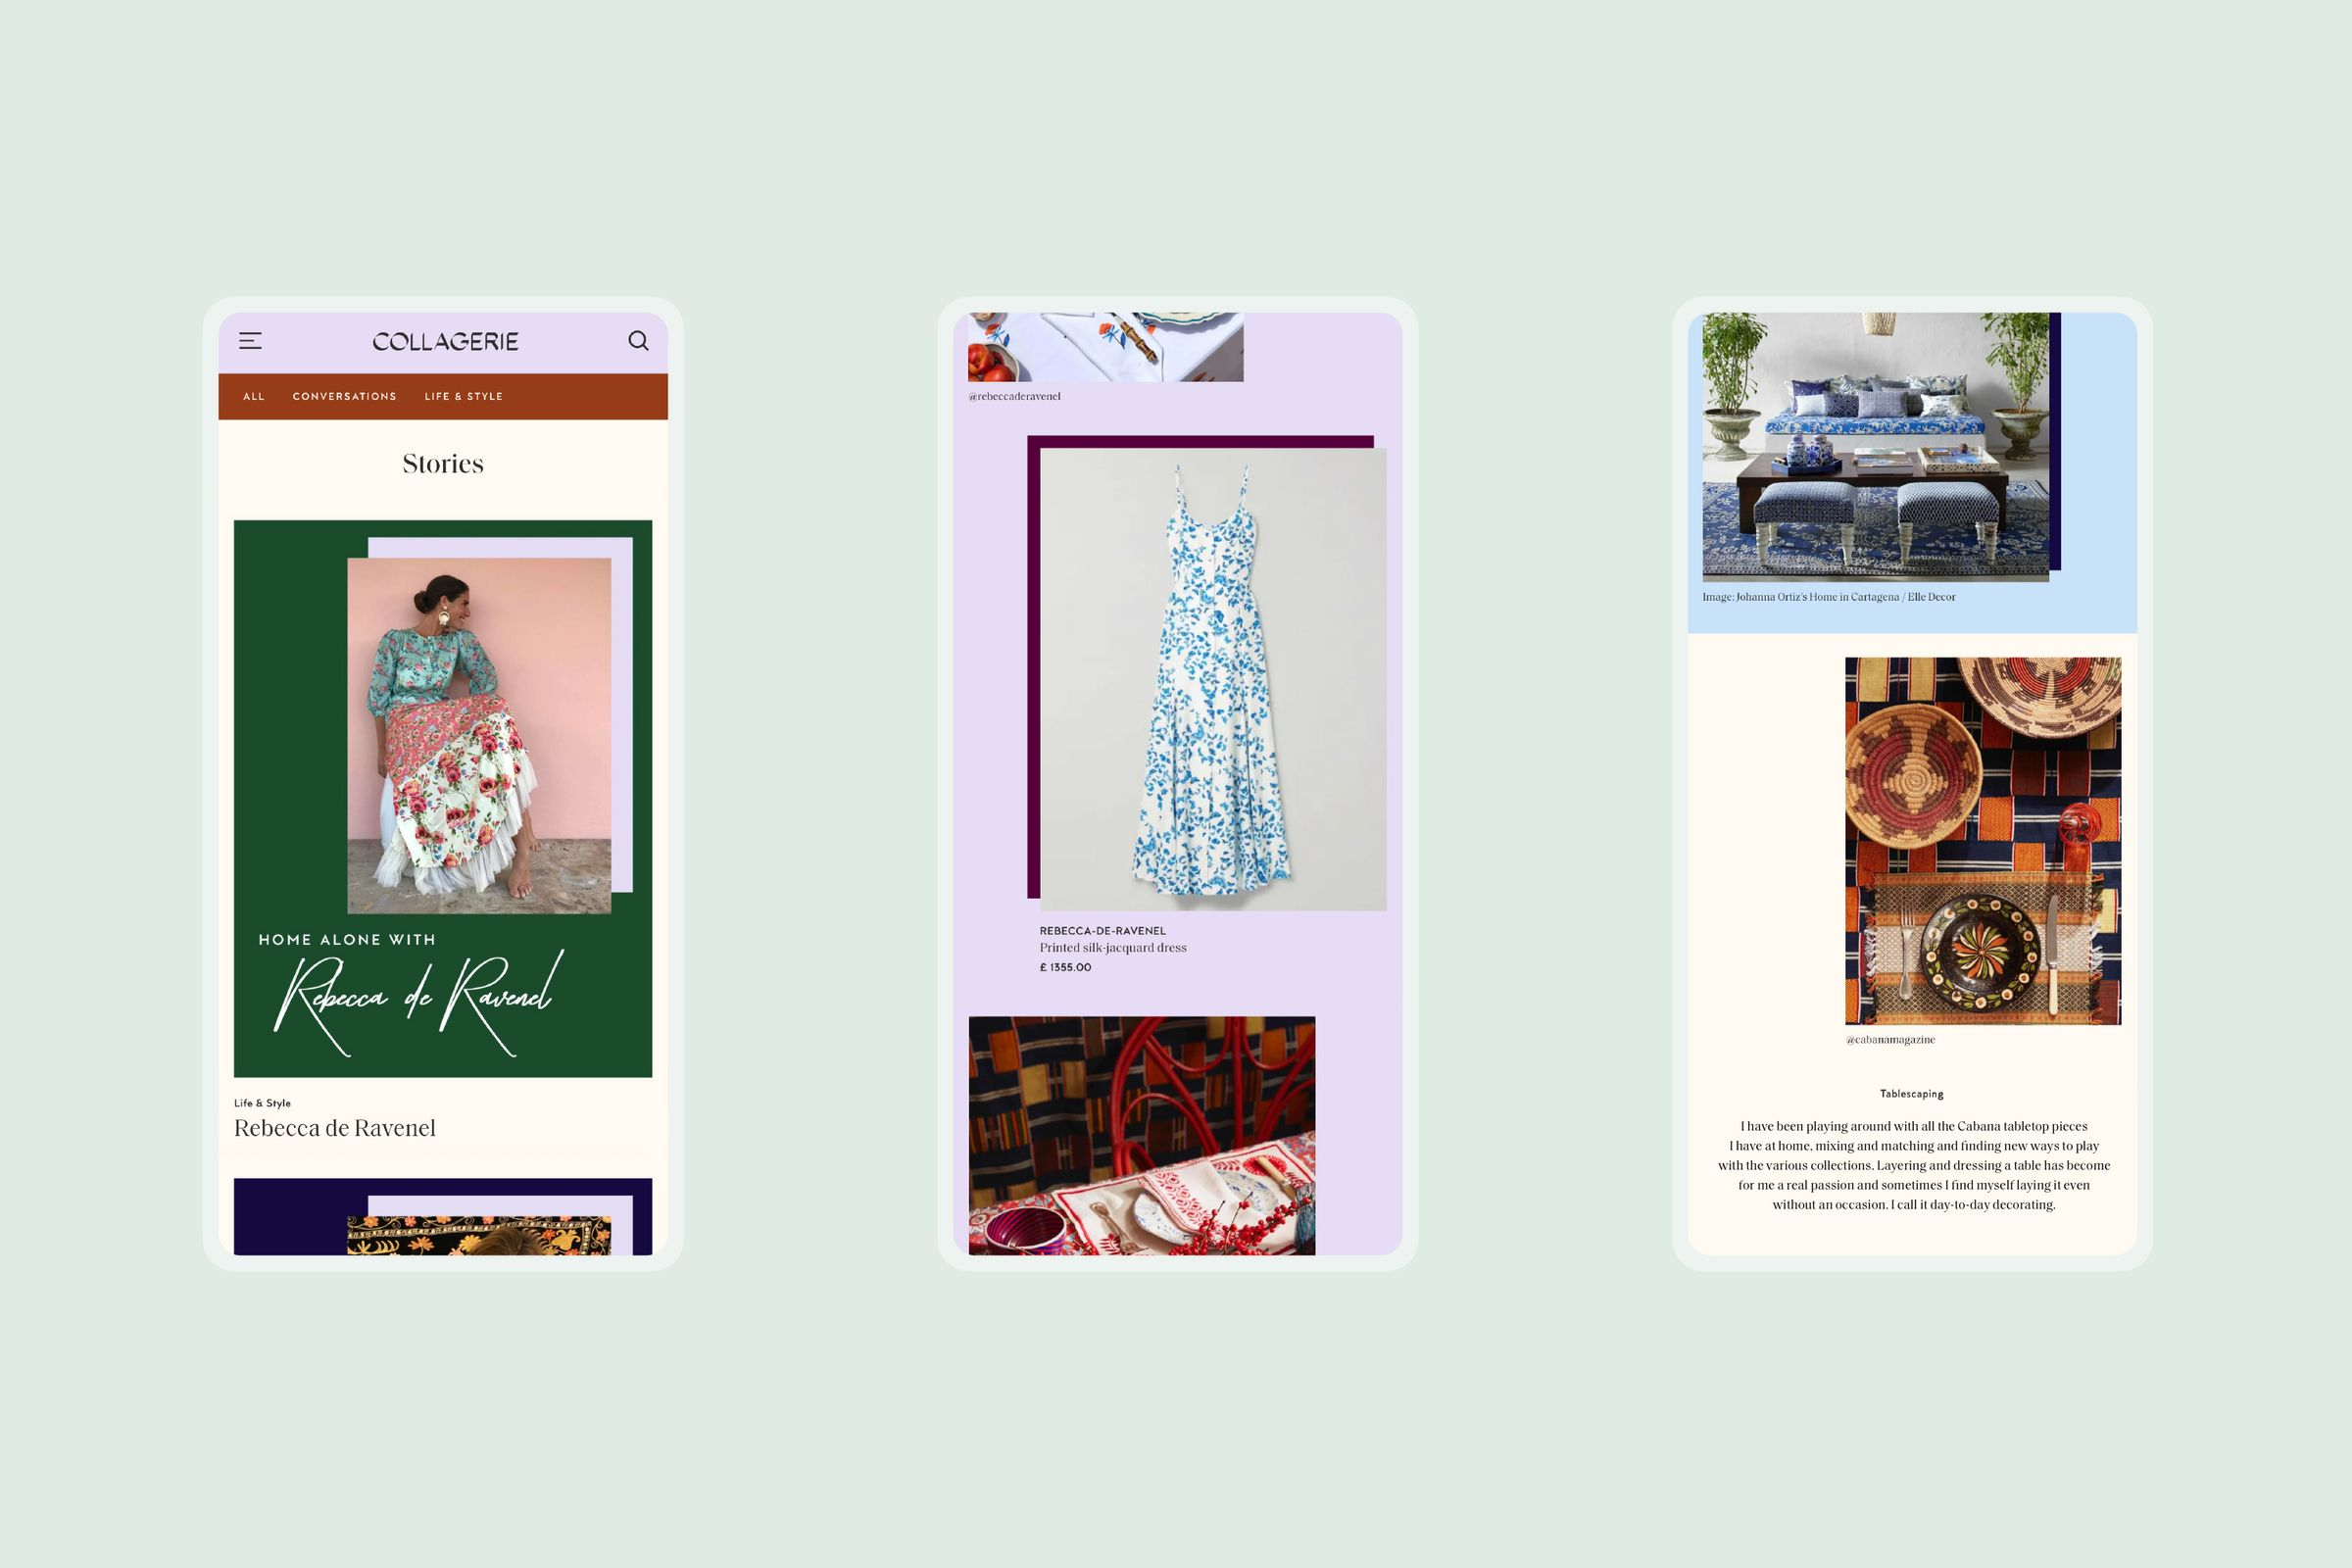 Collagerie website design, with stories on mobile screens